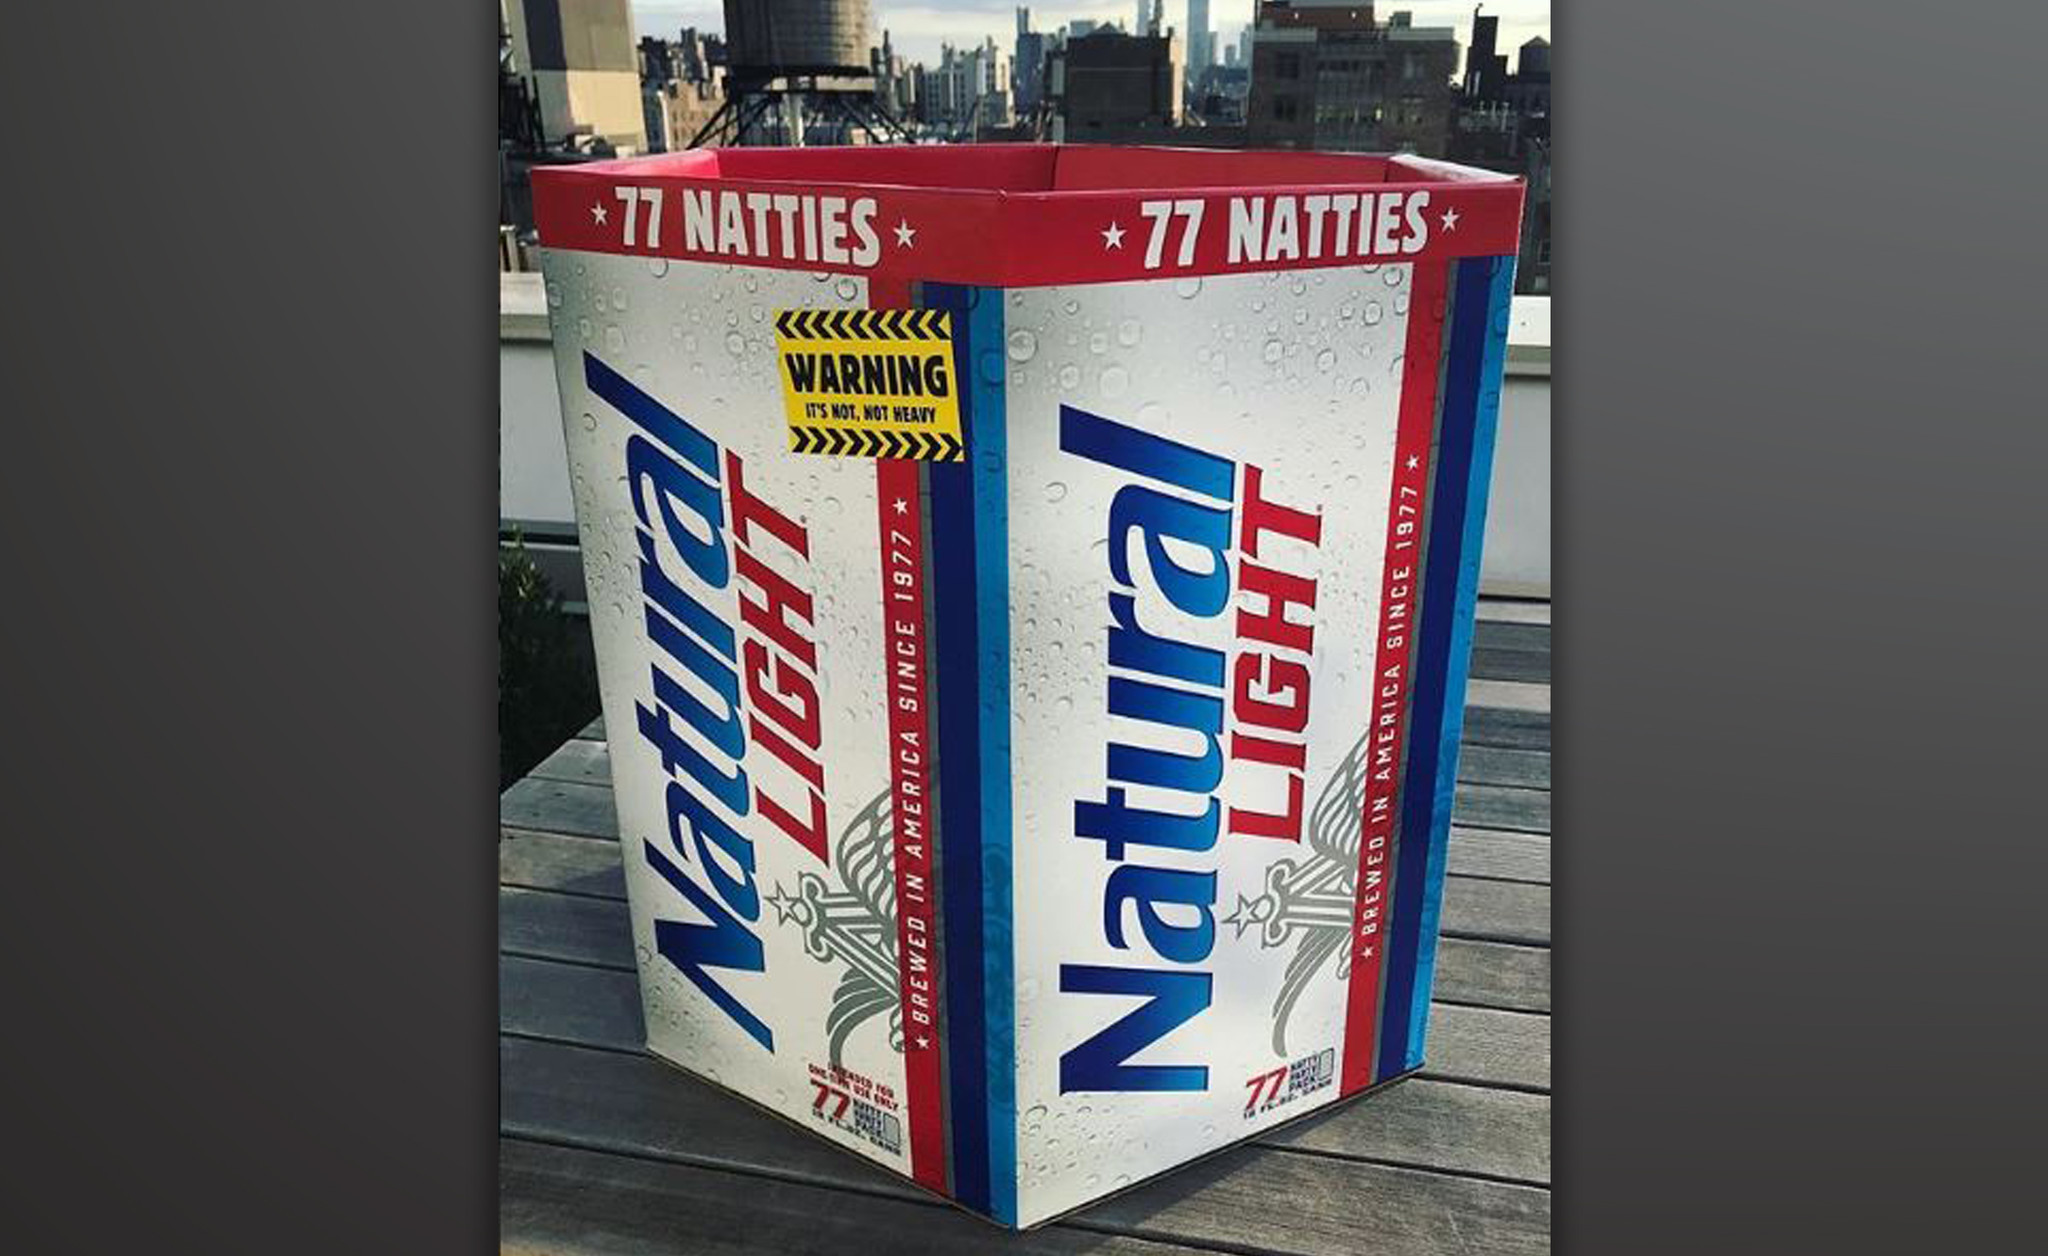 Beer sold in 77-packs has Marylands comptroller accusing Anheuser-Busch of promoting binge drinking